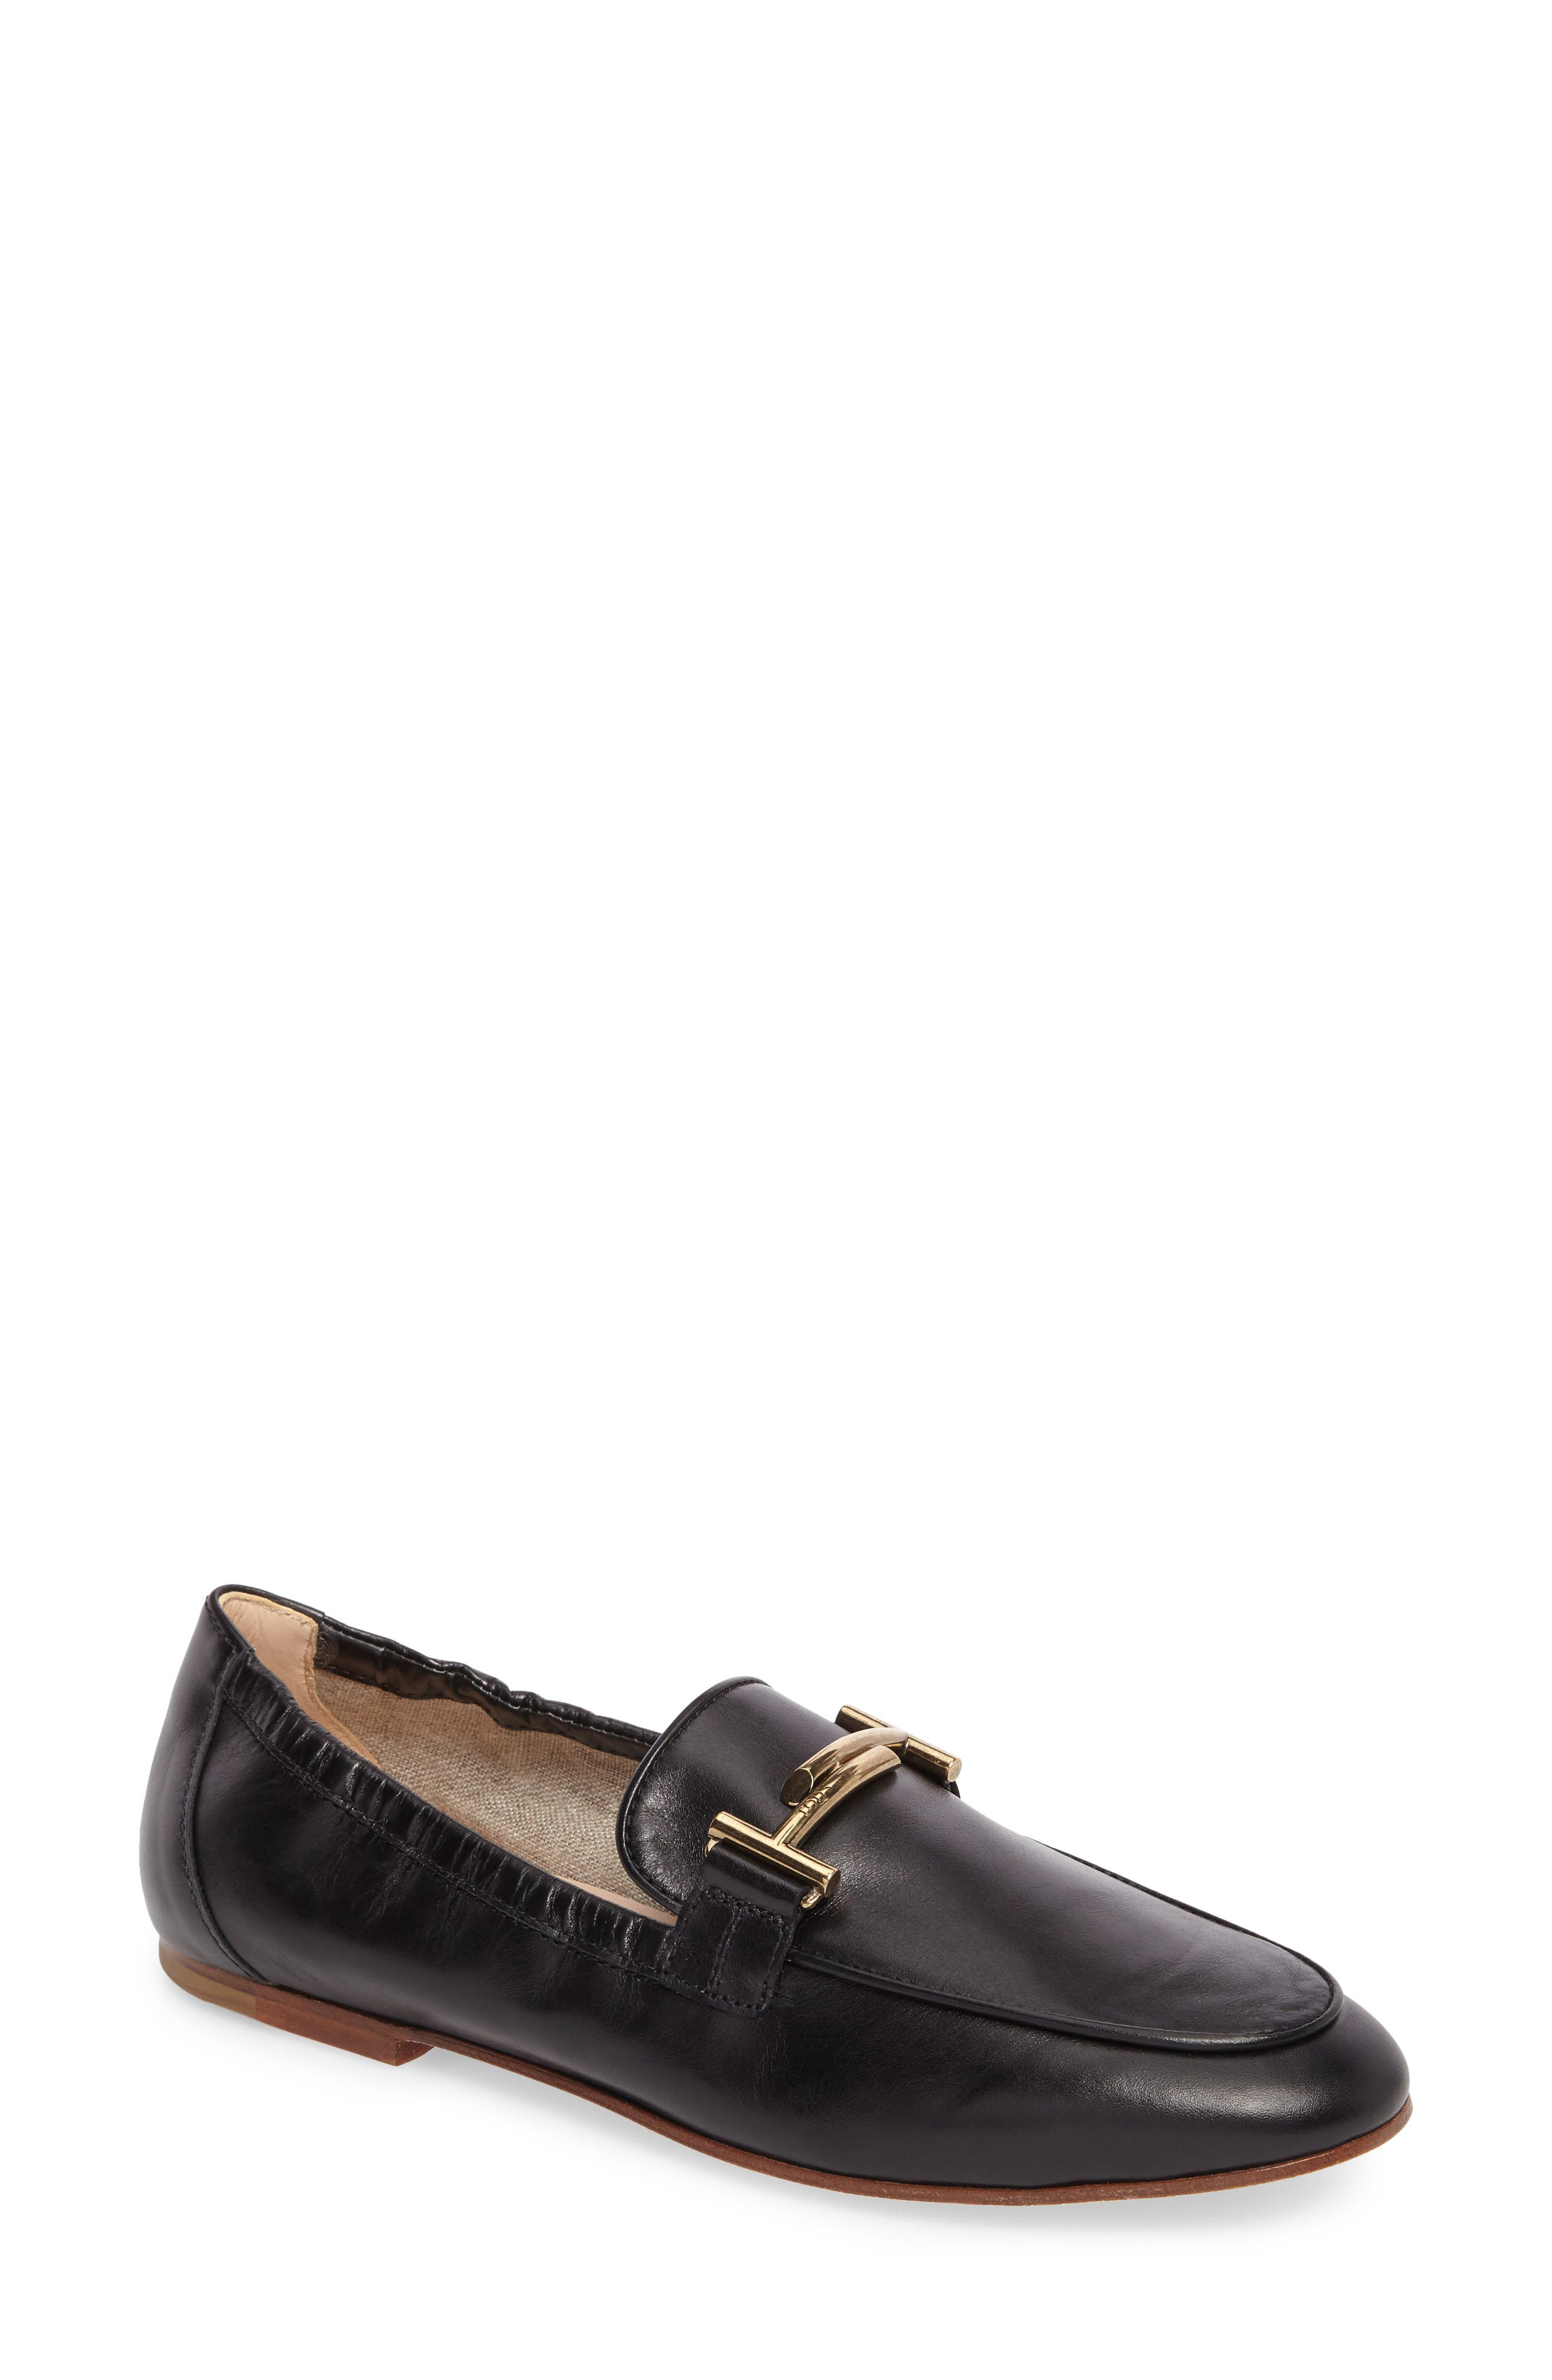 Double T Scrunch Loafer,                         Main,                         color, 001